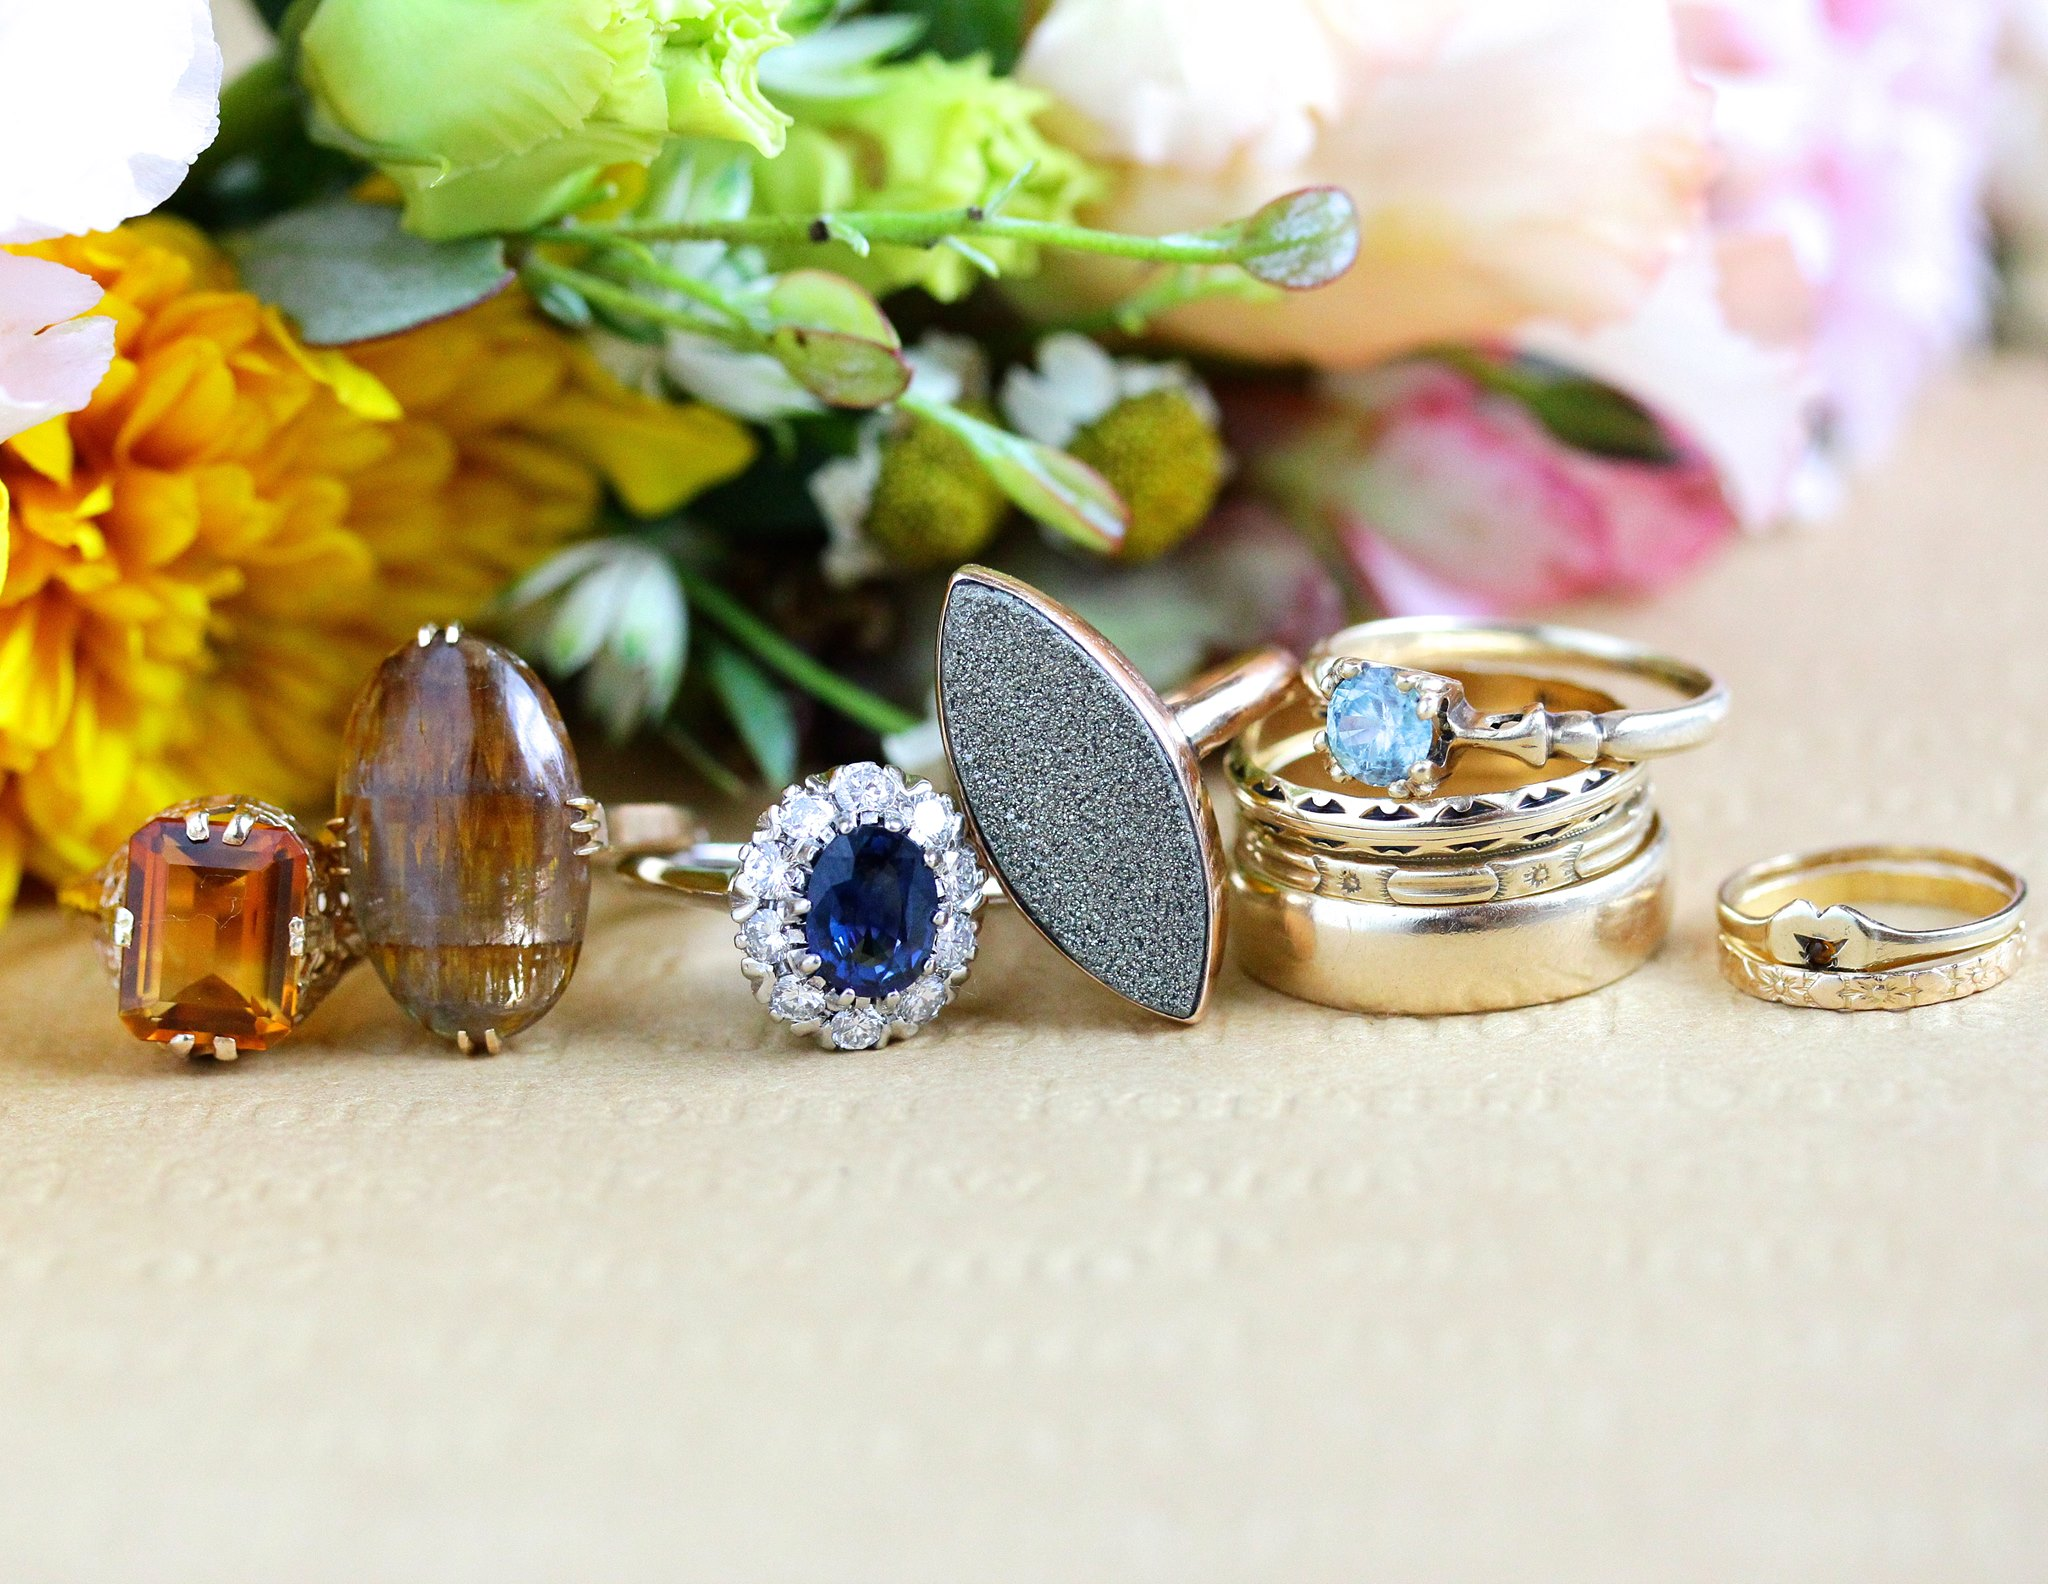 Vintage rings worn by Laura Mae, including:   Vintage 10k Rosy Yellow Gold Blue Zircon Ring     Vintage 18k Rosy Yellow Gold Rutilated Amethyst Quartz Ring